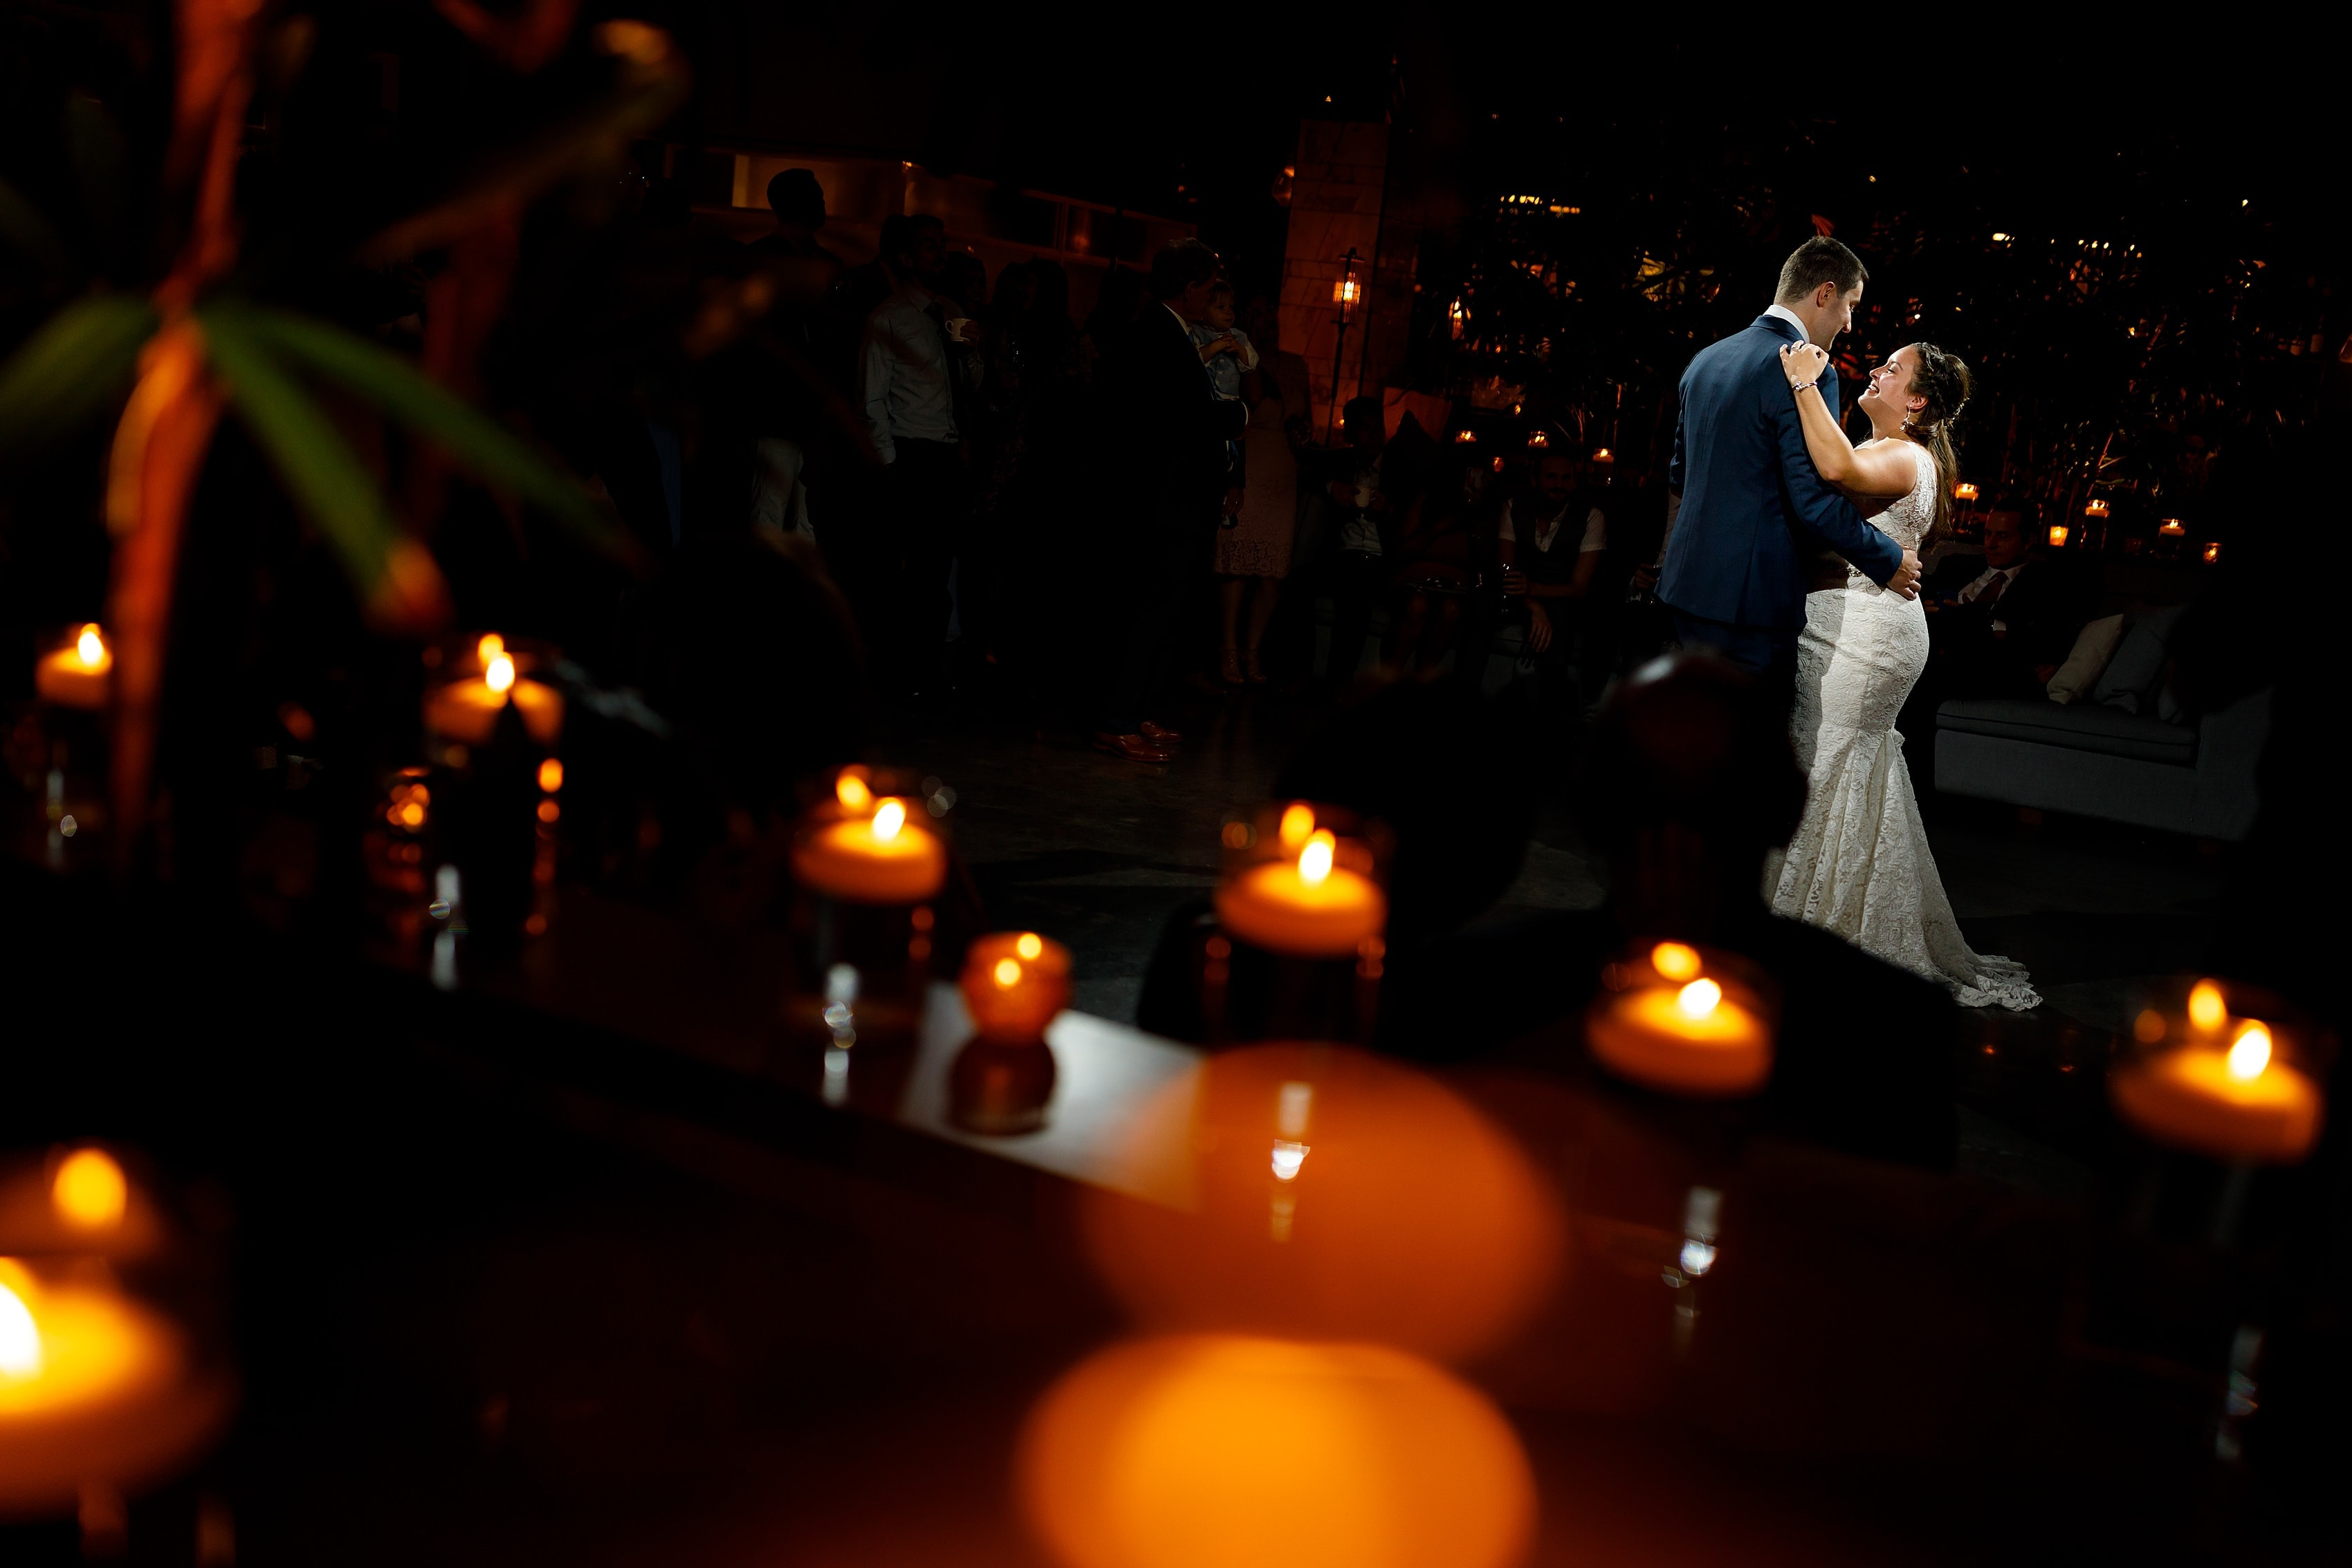 first dance during wedding reception at Boleo rooftop bar at Kimpton Gray Hotel in downtown Chicago